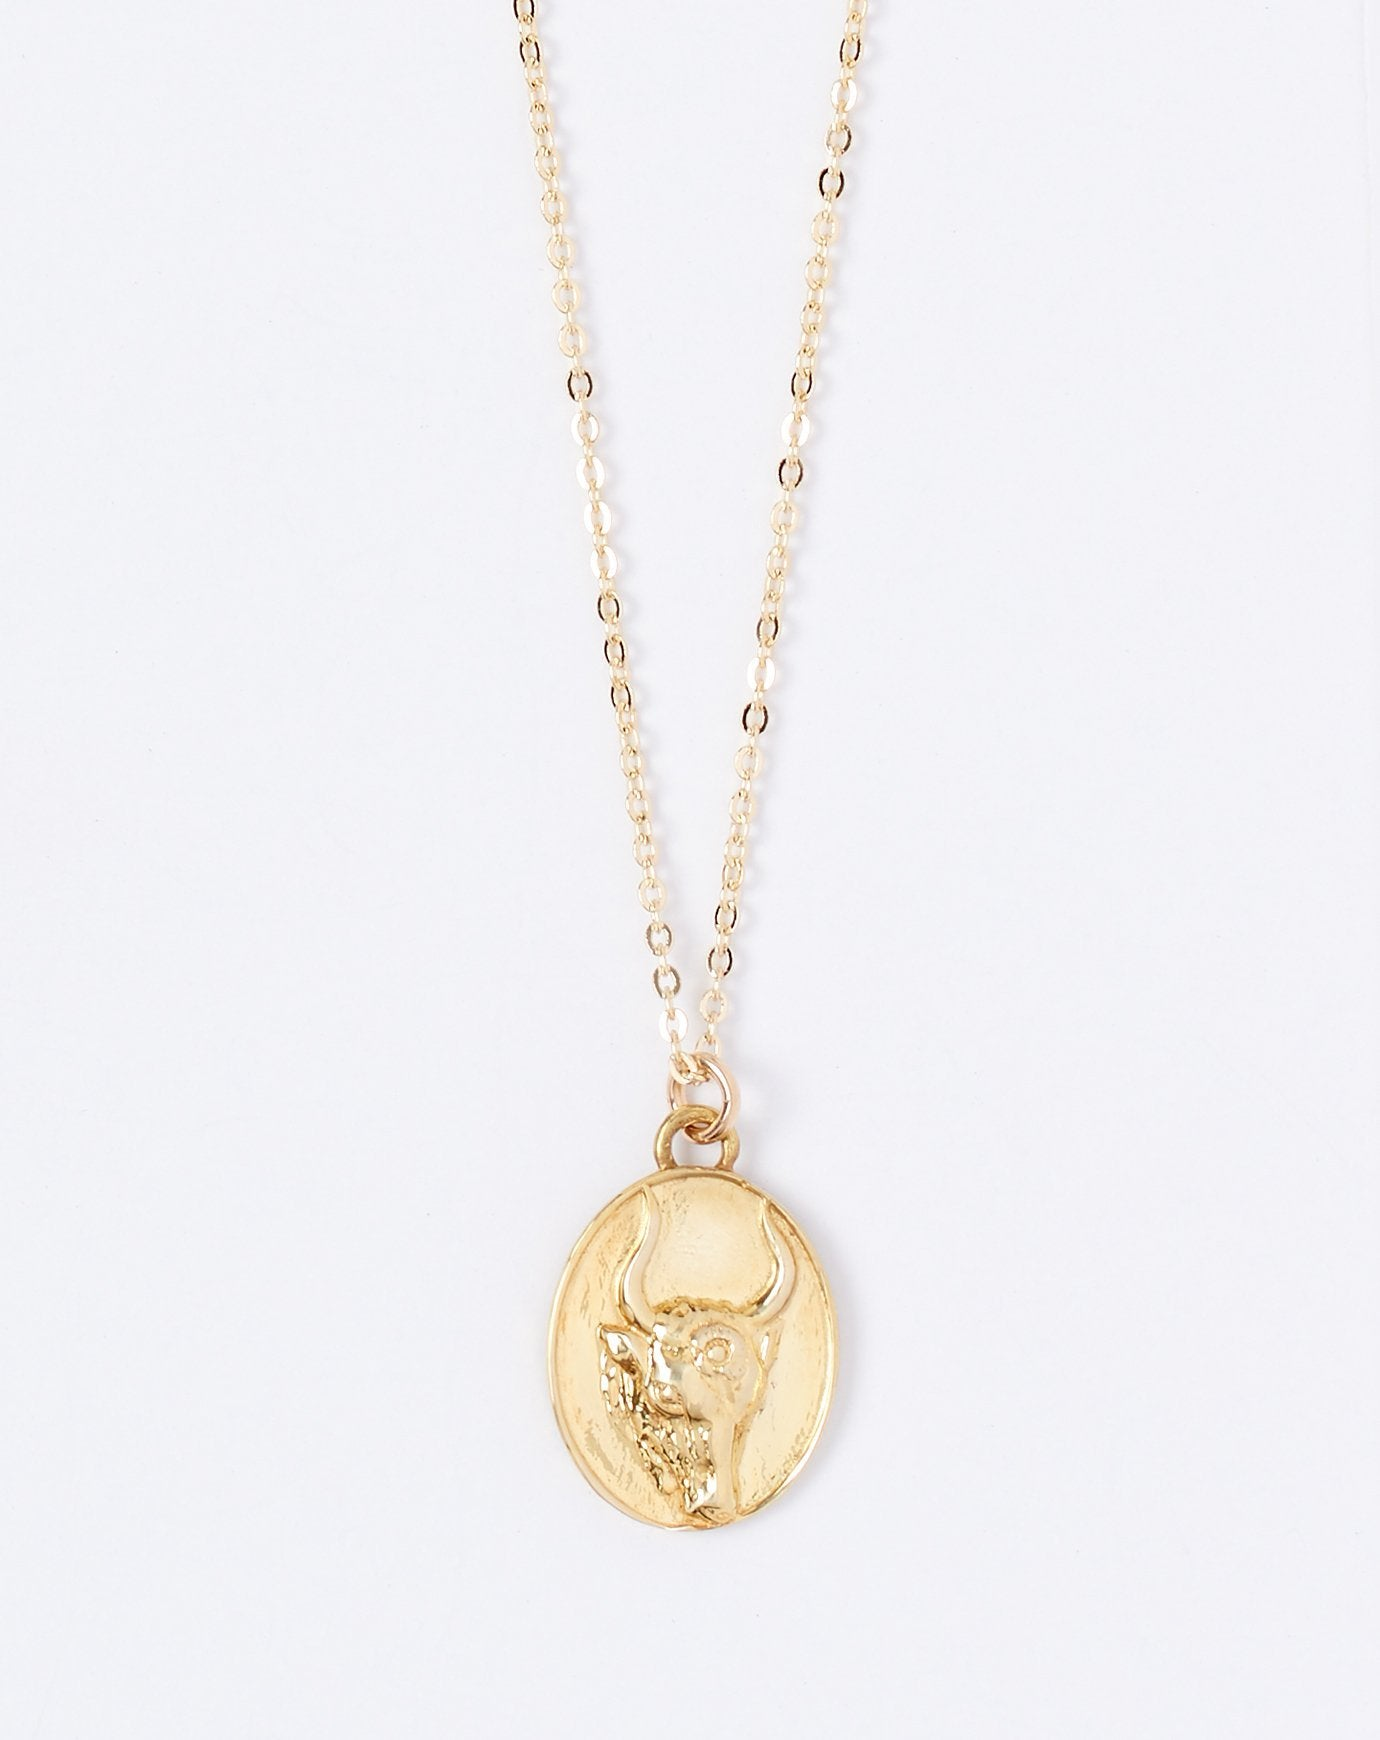 Talon Zodiac Pendant Necklace - Taurus